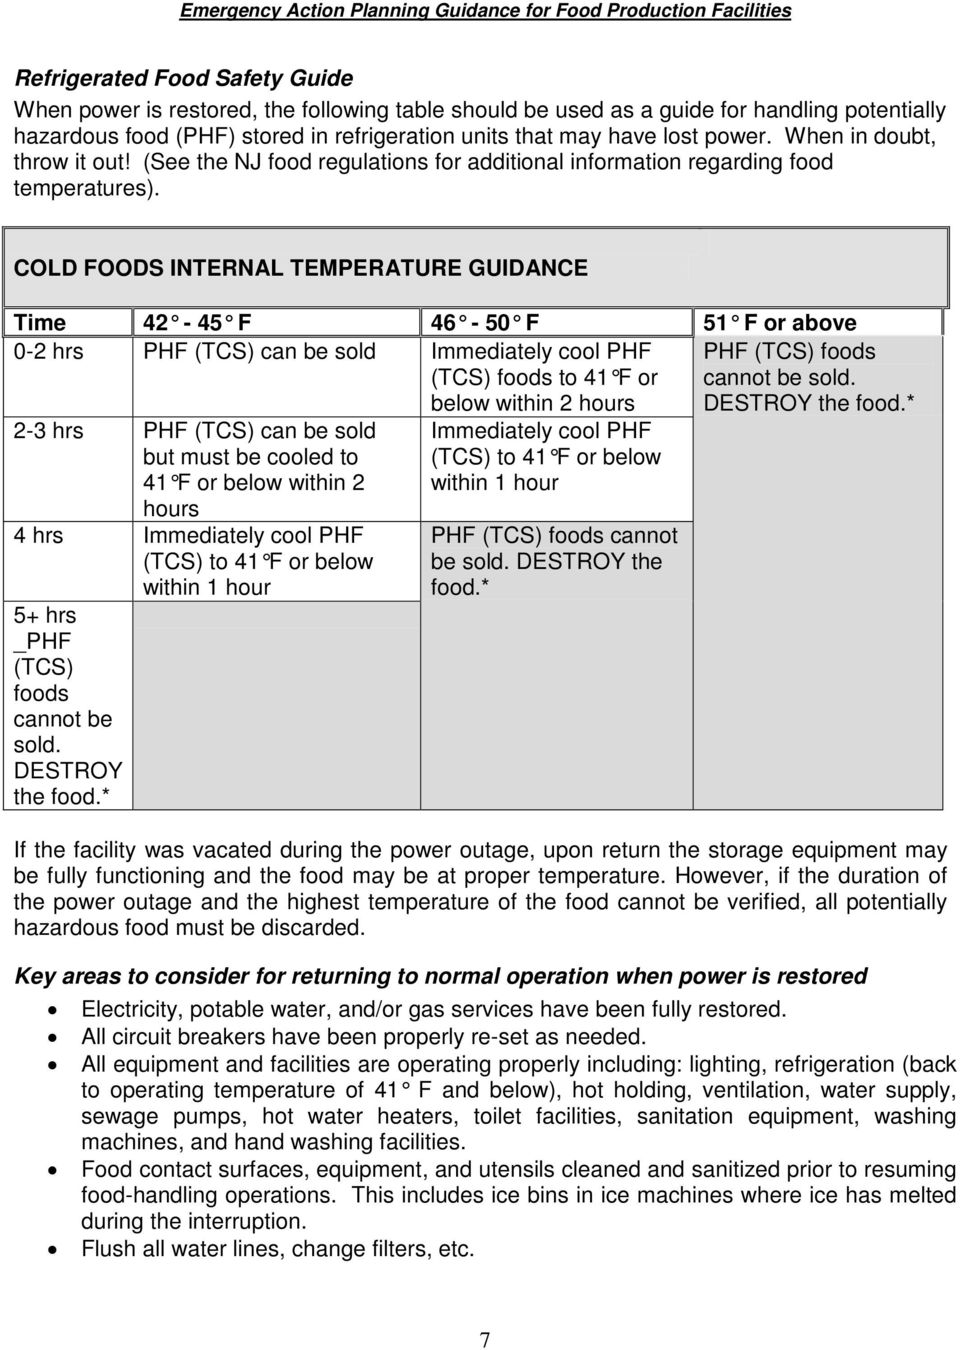 COLD FOODS INTERNAL TEMPERATURE GUIDANCE Time 42-45 F 46-50 F 51 F or above 0-2 hrs PHF (TCS) can be sold Immediately cool PHF (TCS) foods to 41 F or below within 2 hours 2-3 hrs PHF (TCS) can be